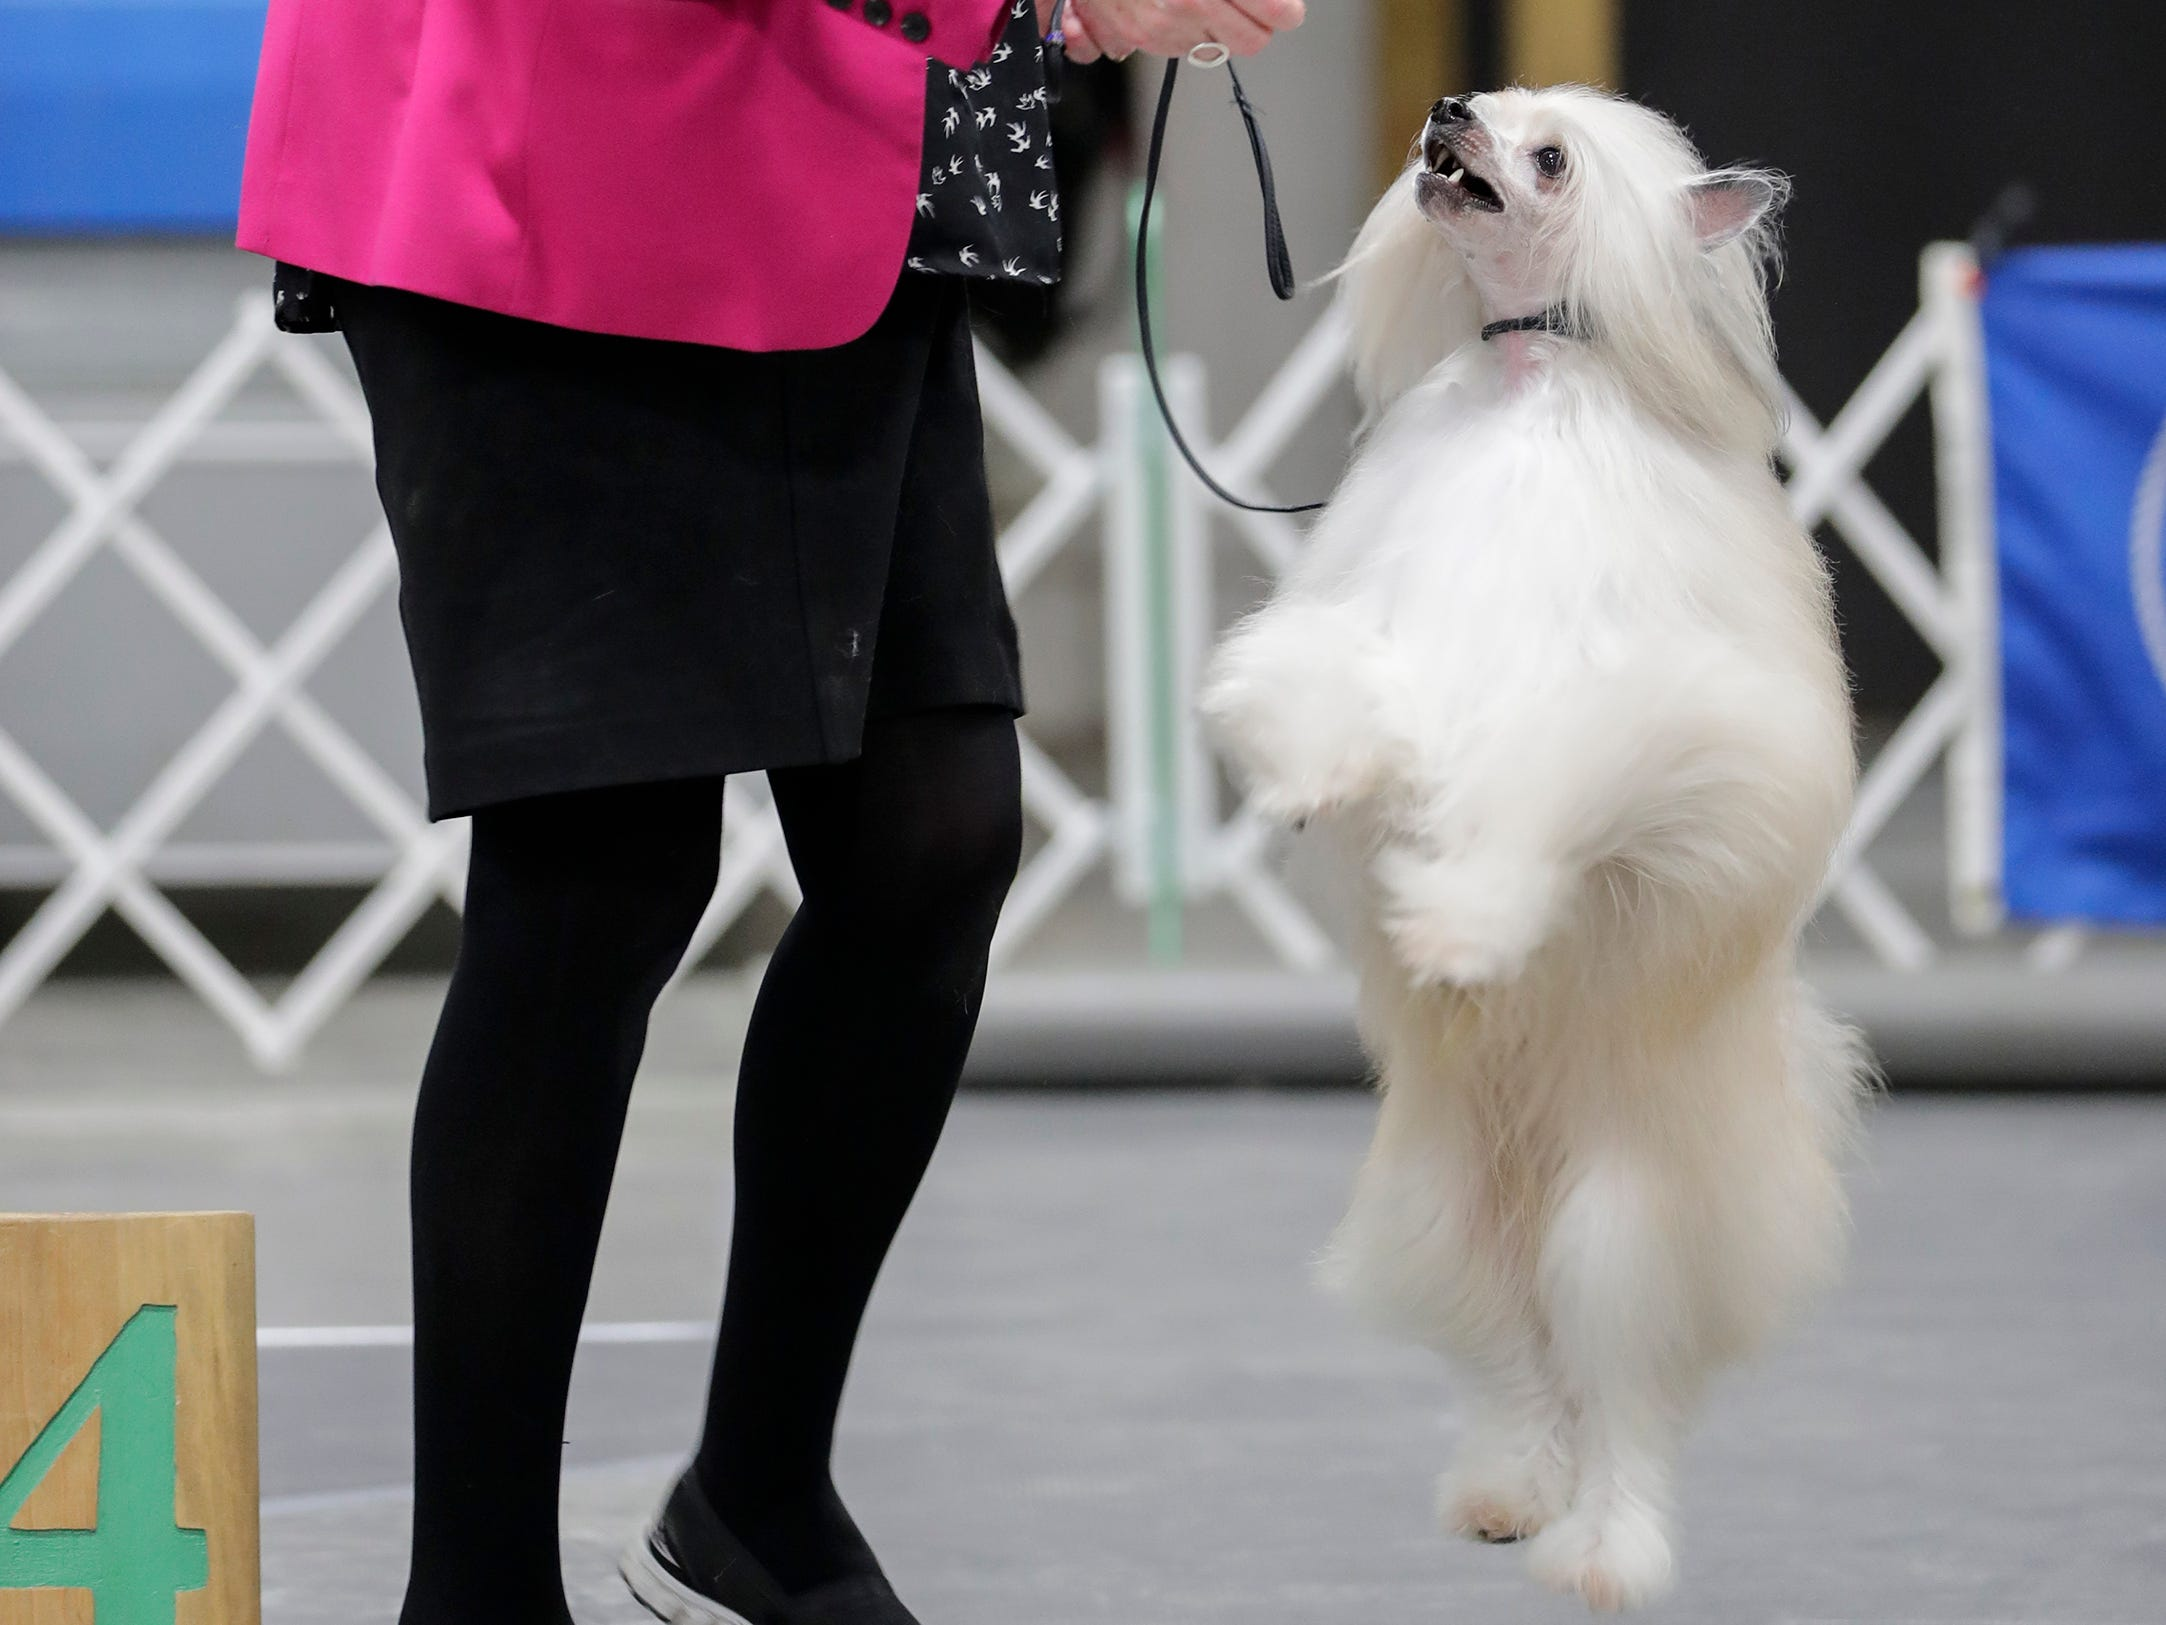 Peggy May, of Winnipeg, Manitoba, gives Leo her Chinese crested powderpuff a treat after they take fourth in the toy group show during the Northeast Wisconsin Dog Show Classic at the Manitowoc County Expo Center Thursday, March 28, 2019, in Manitowoc, Wis. Joshua Clark/USA TODAY NETWORK-Wisconsin